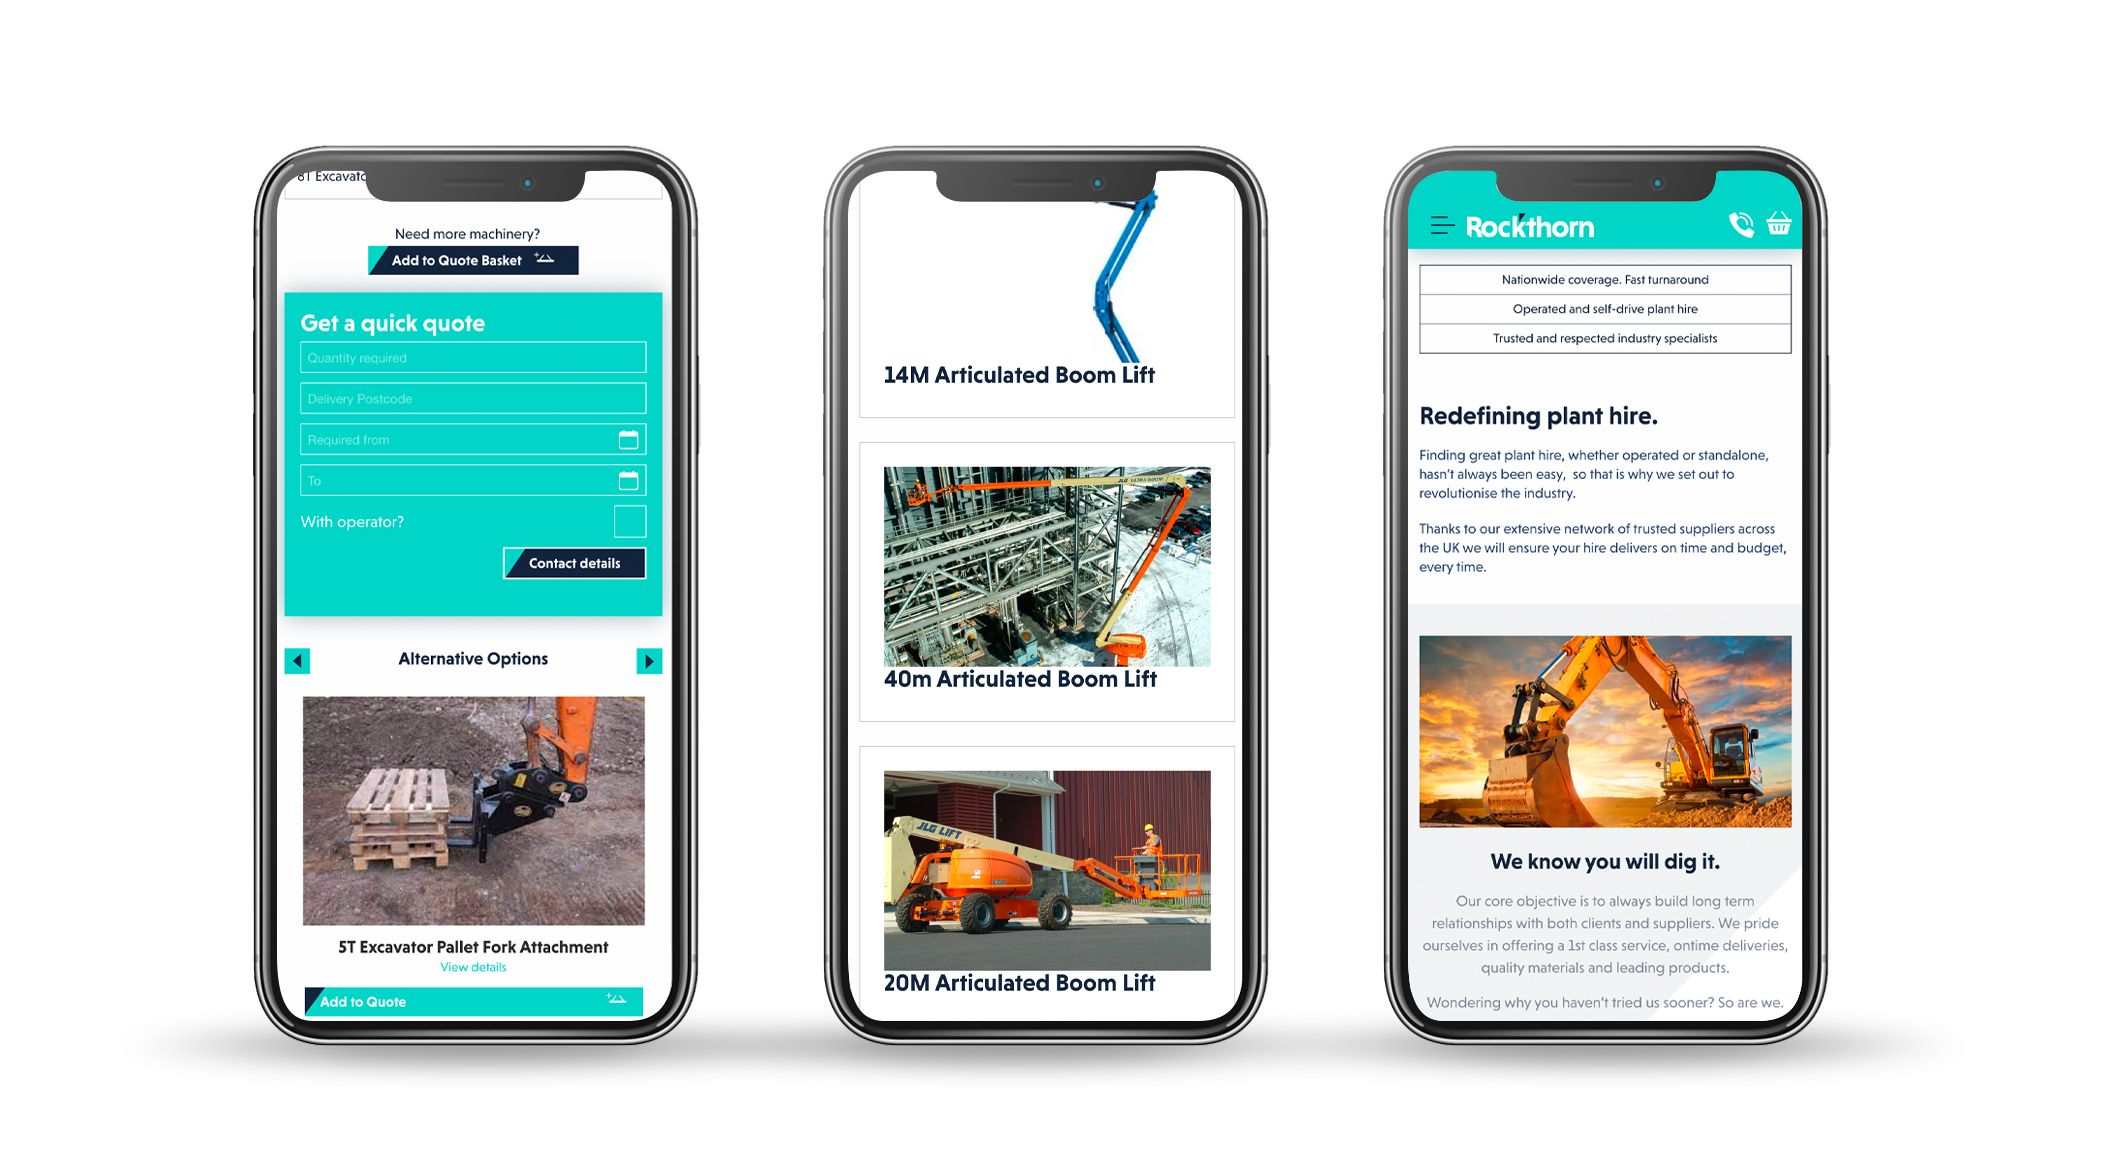 Mobile screens showing new website